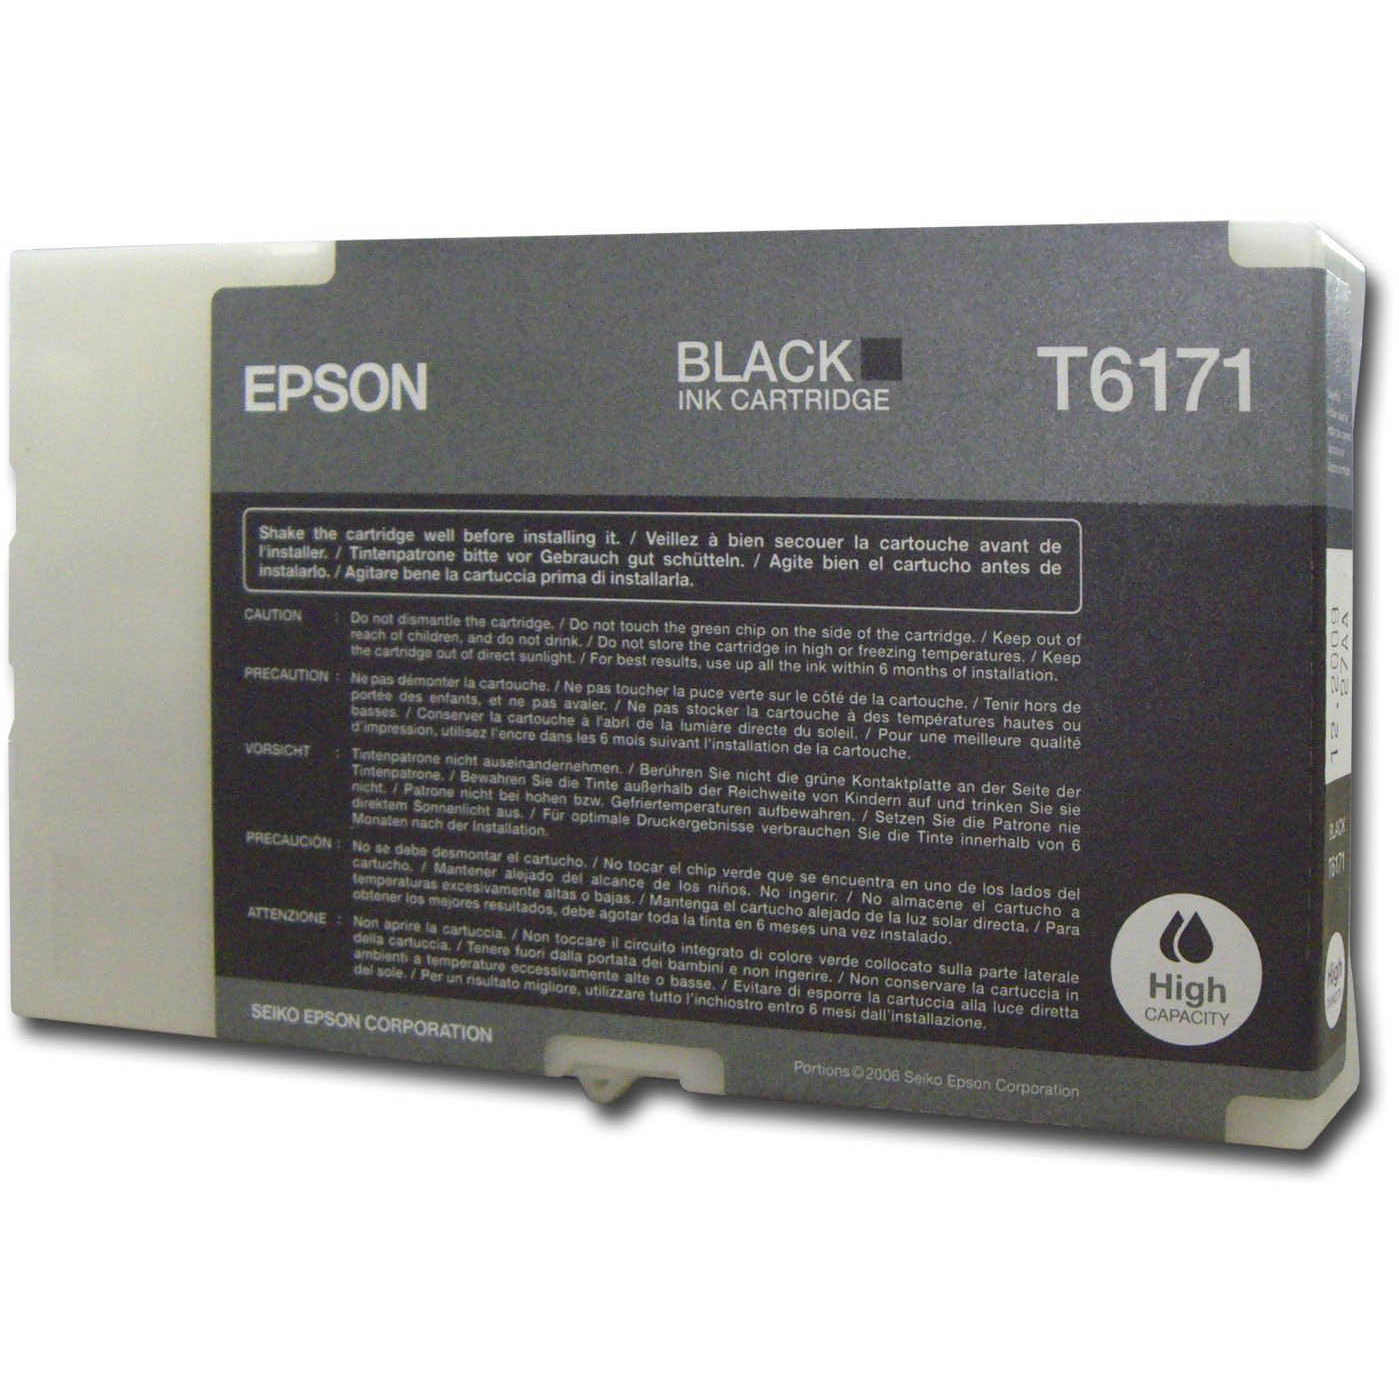 Original Epson T6171 Black High Capacity Ink Cartridge (C13T617100)